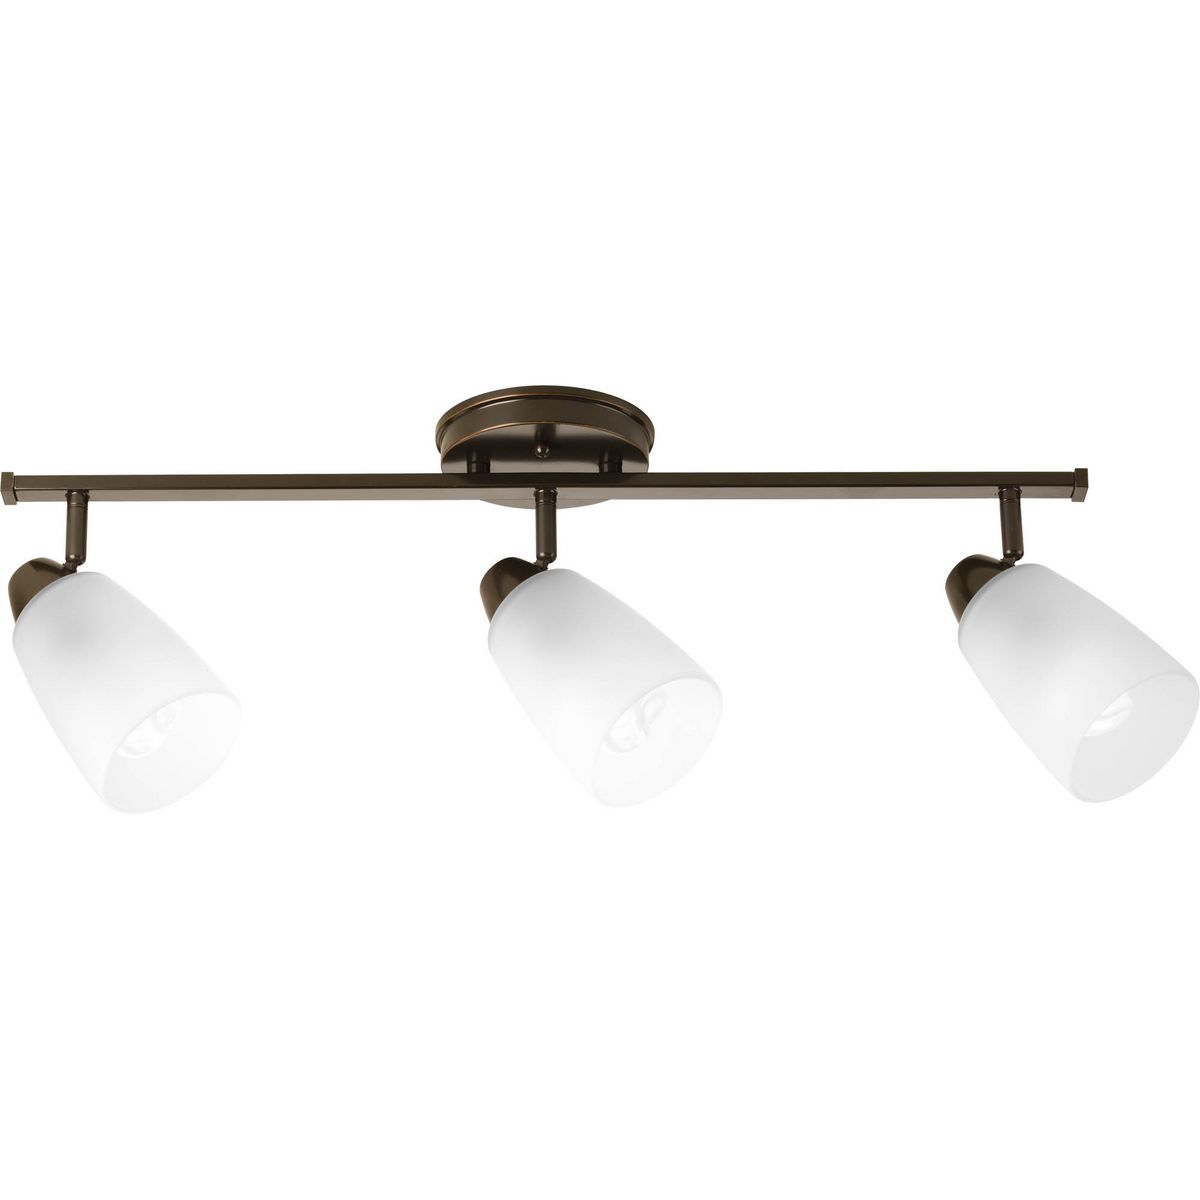 Wisten Collection Three-Light Directional